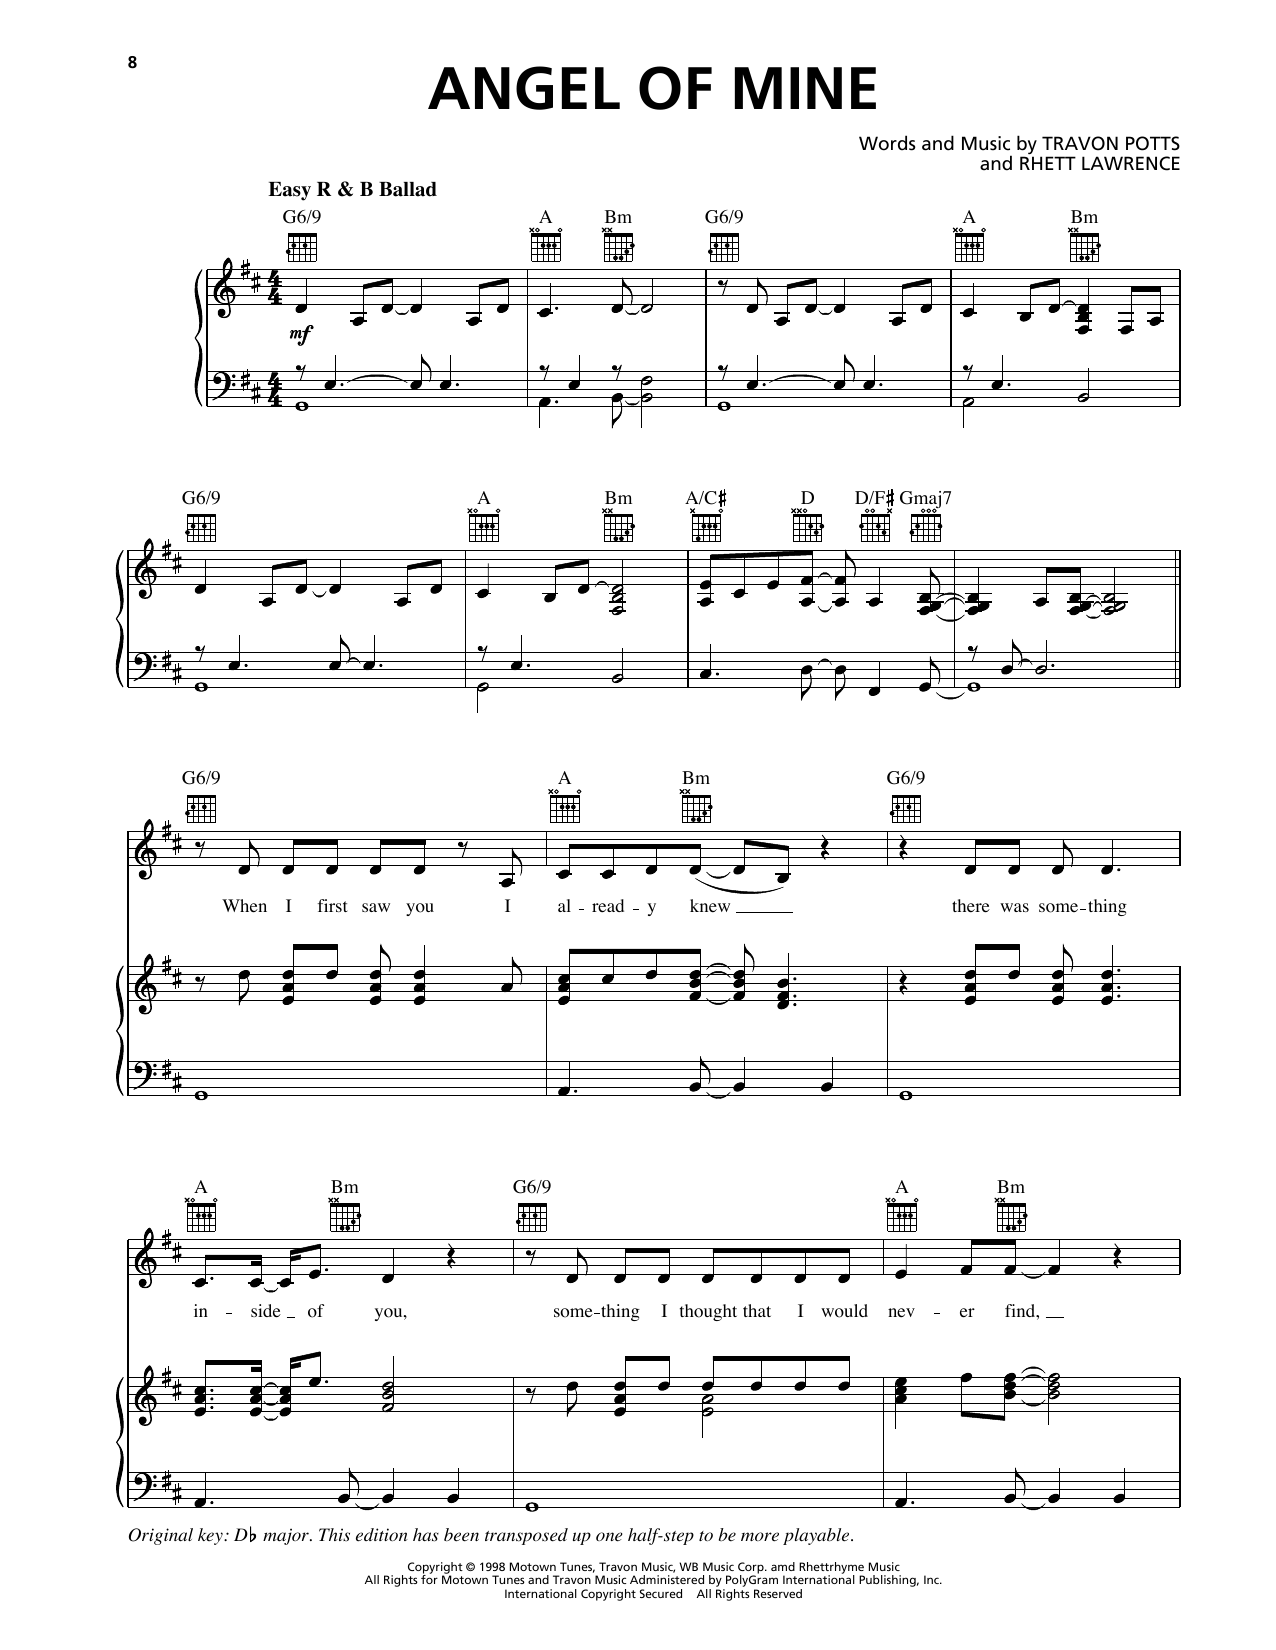 Monica Angel Of Mine sheet music notes and chords. Download Printable PDF.